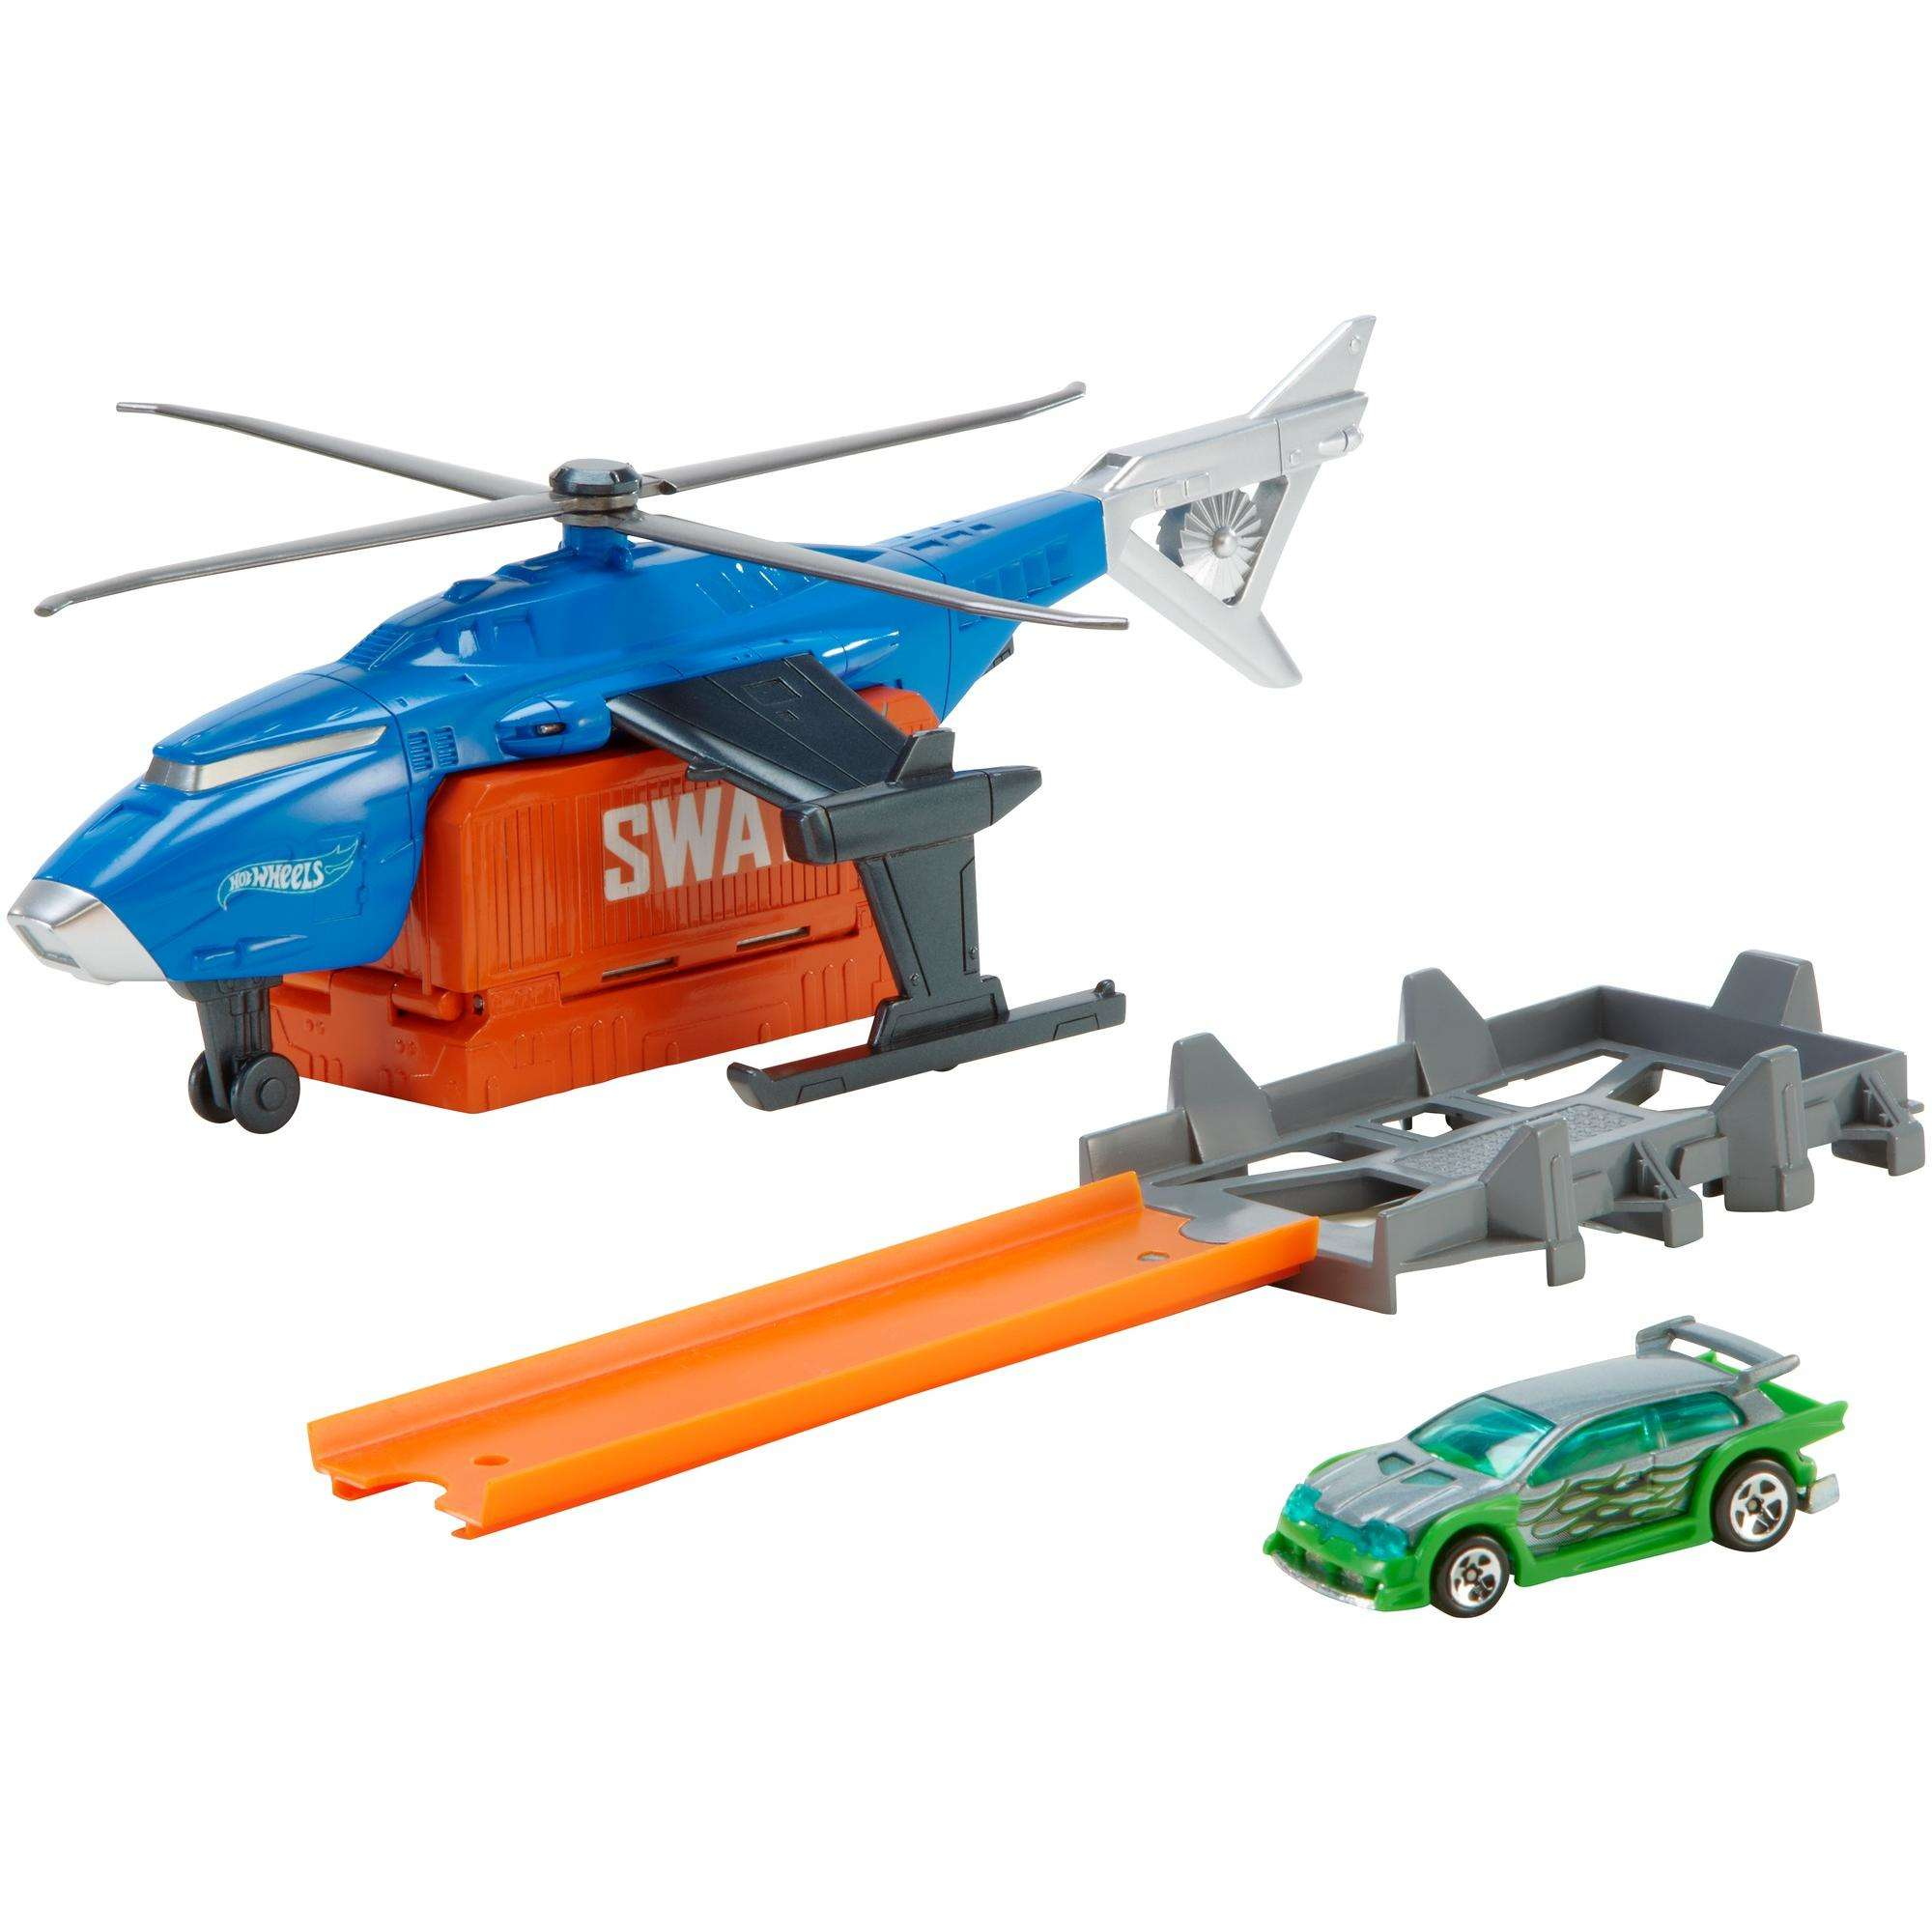 Hot Wheels Super S.W.A.T. Copter Vehicle by Mattel